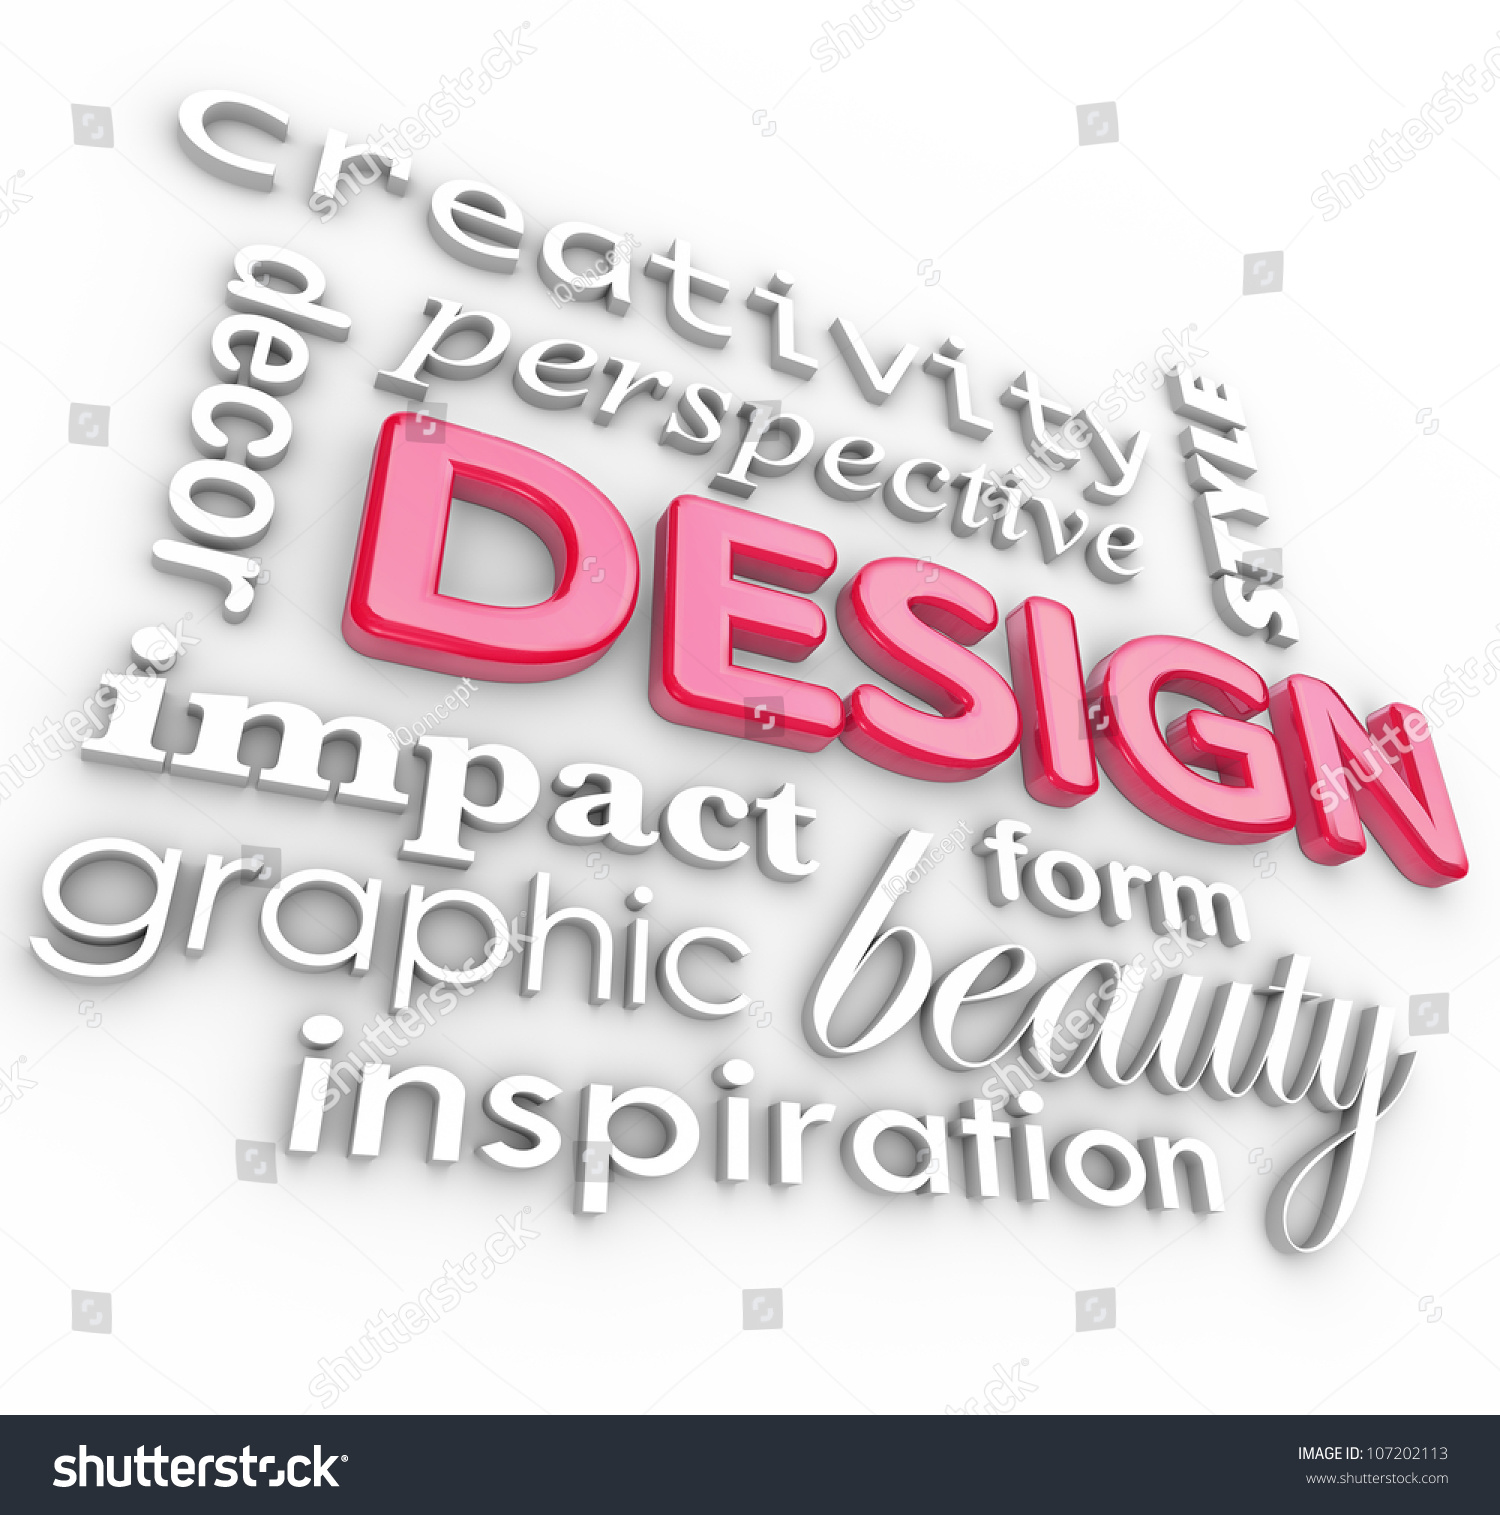 The Word Design And Related Words In A Collage Representing Creativity Beauty Inspiration